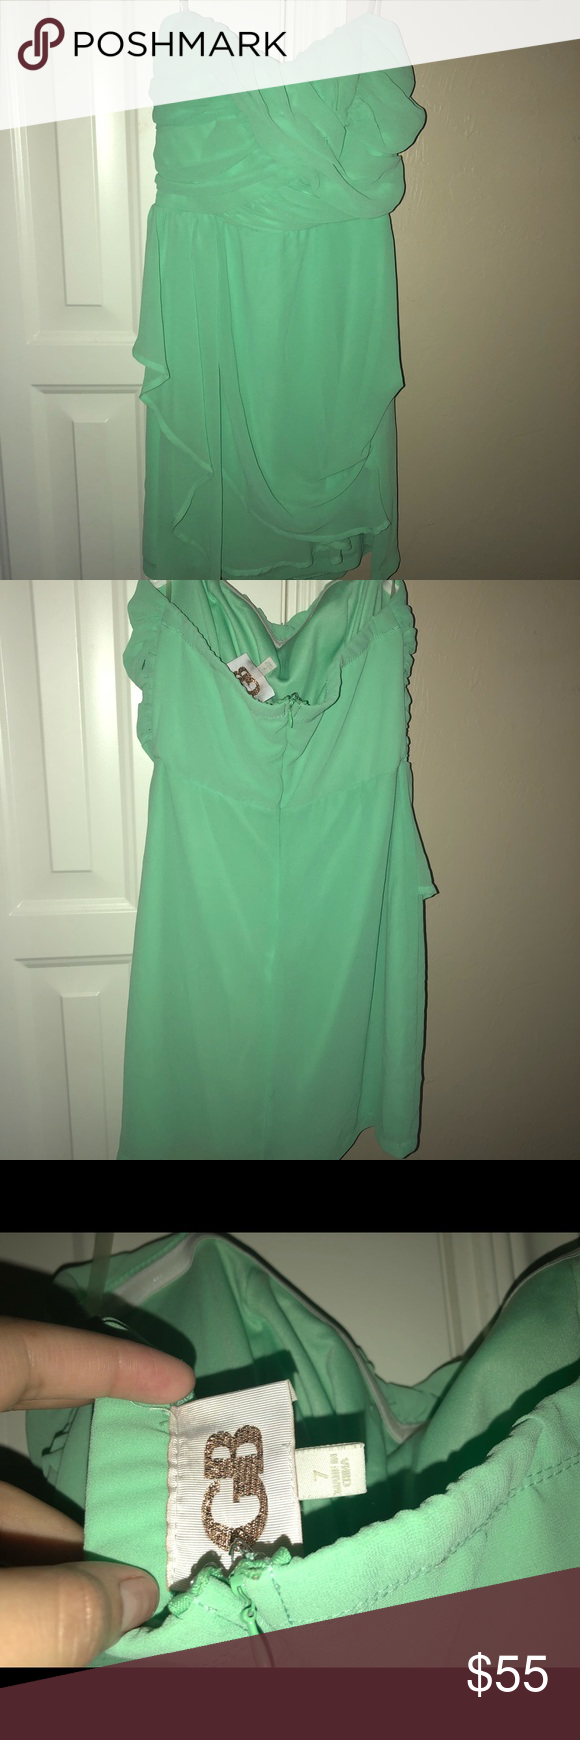 d605040327e Mint Green Semi Formal Dress